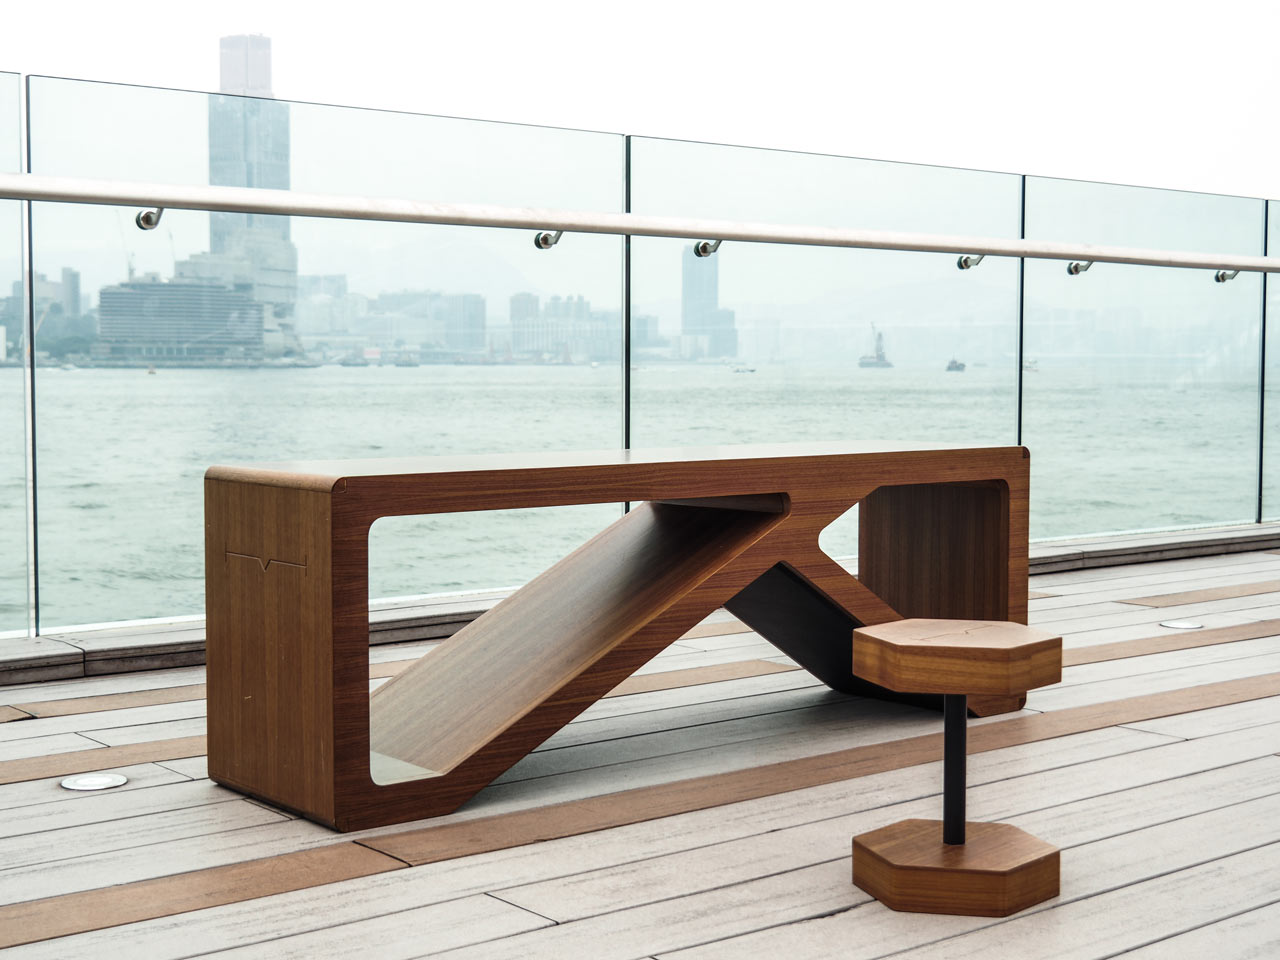 The Habit Furniture Designed Multifunctional At Home